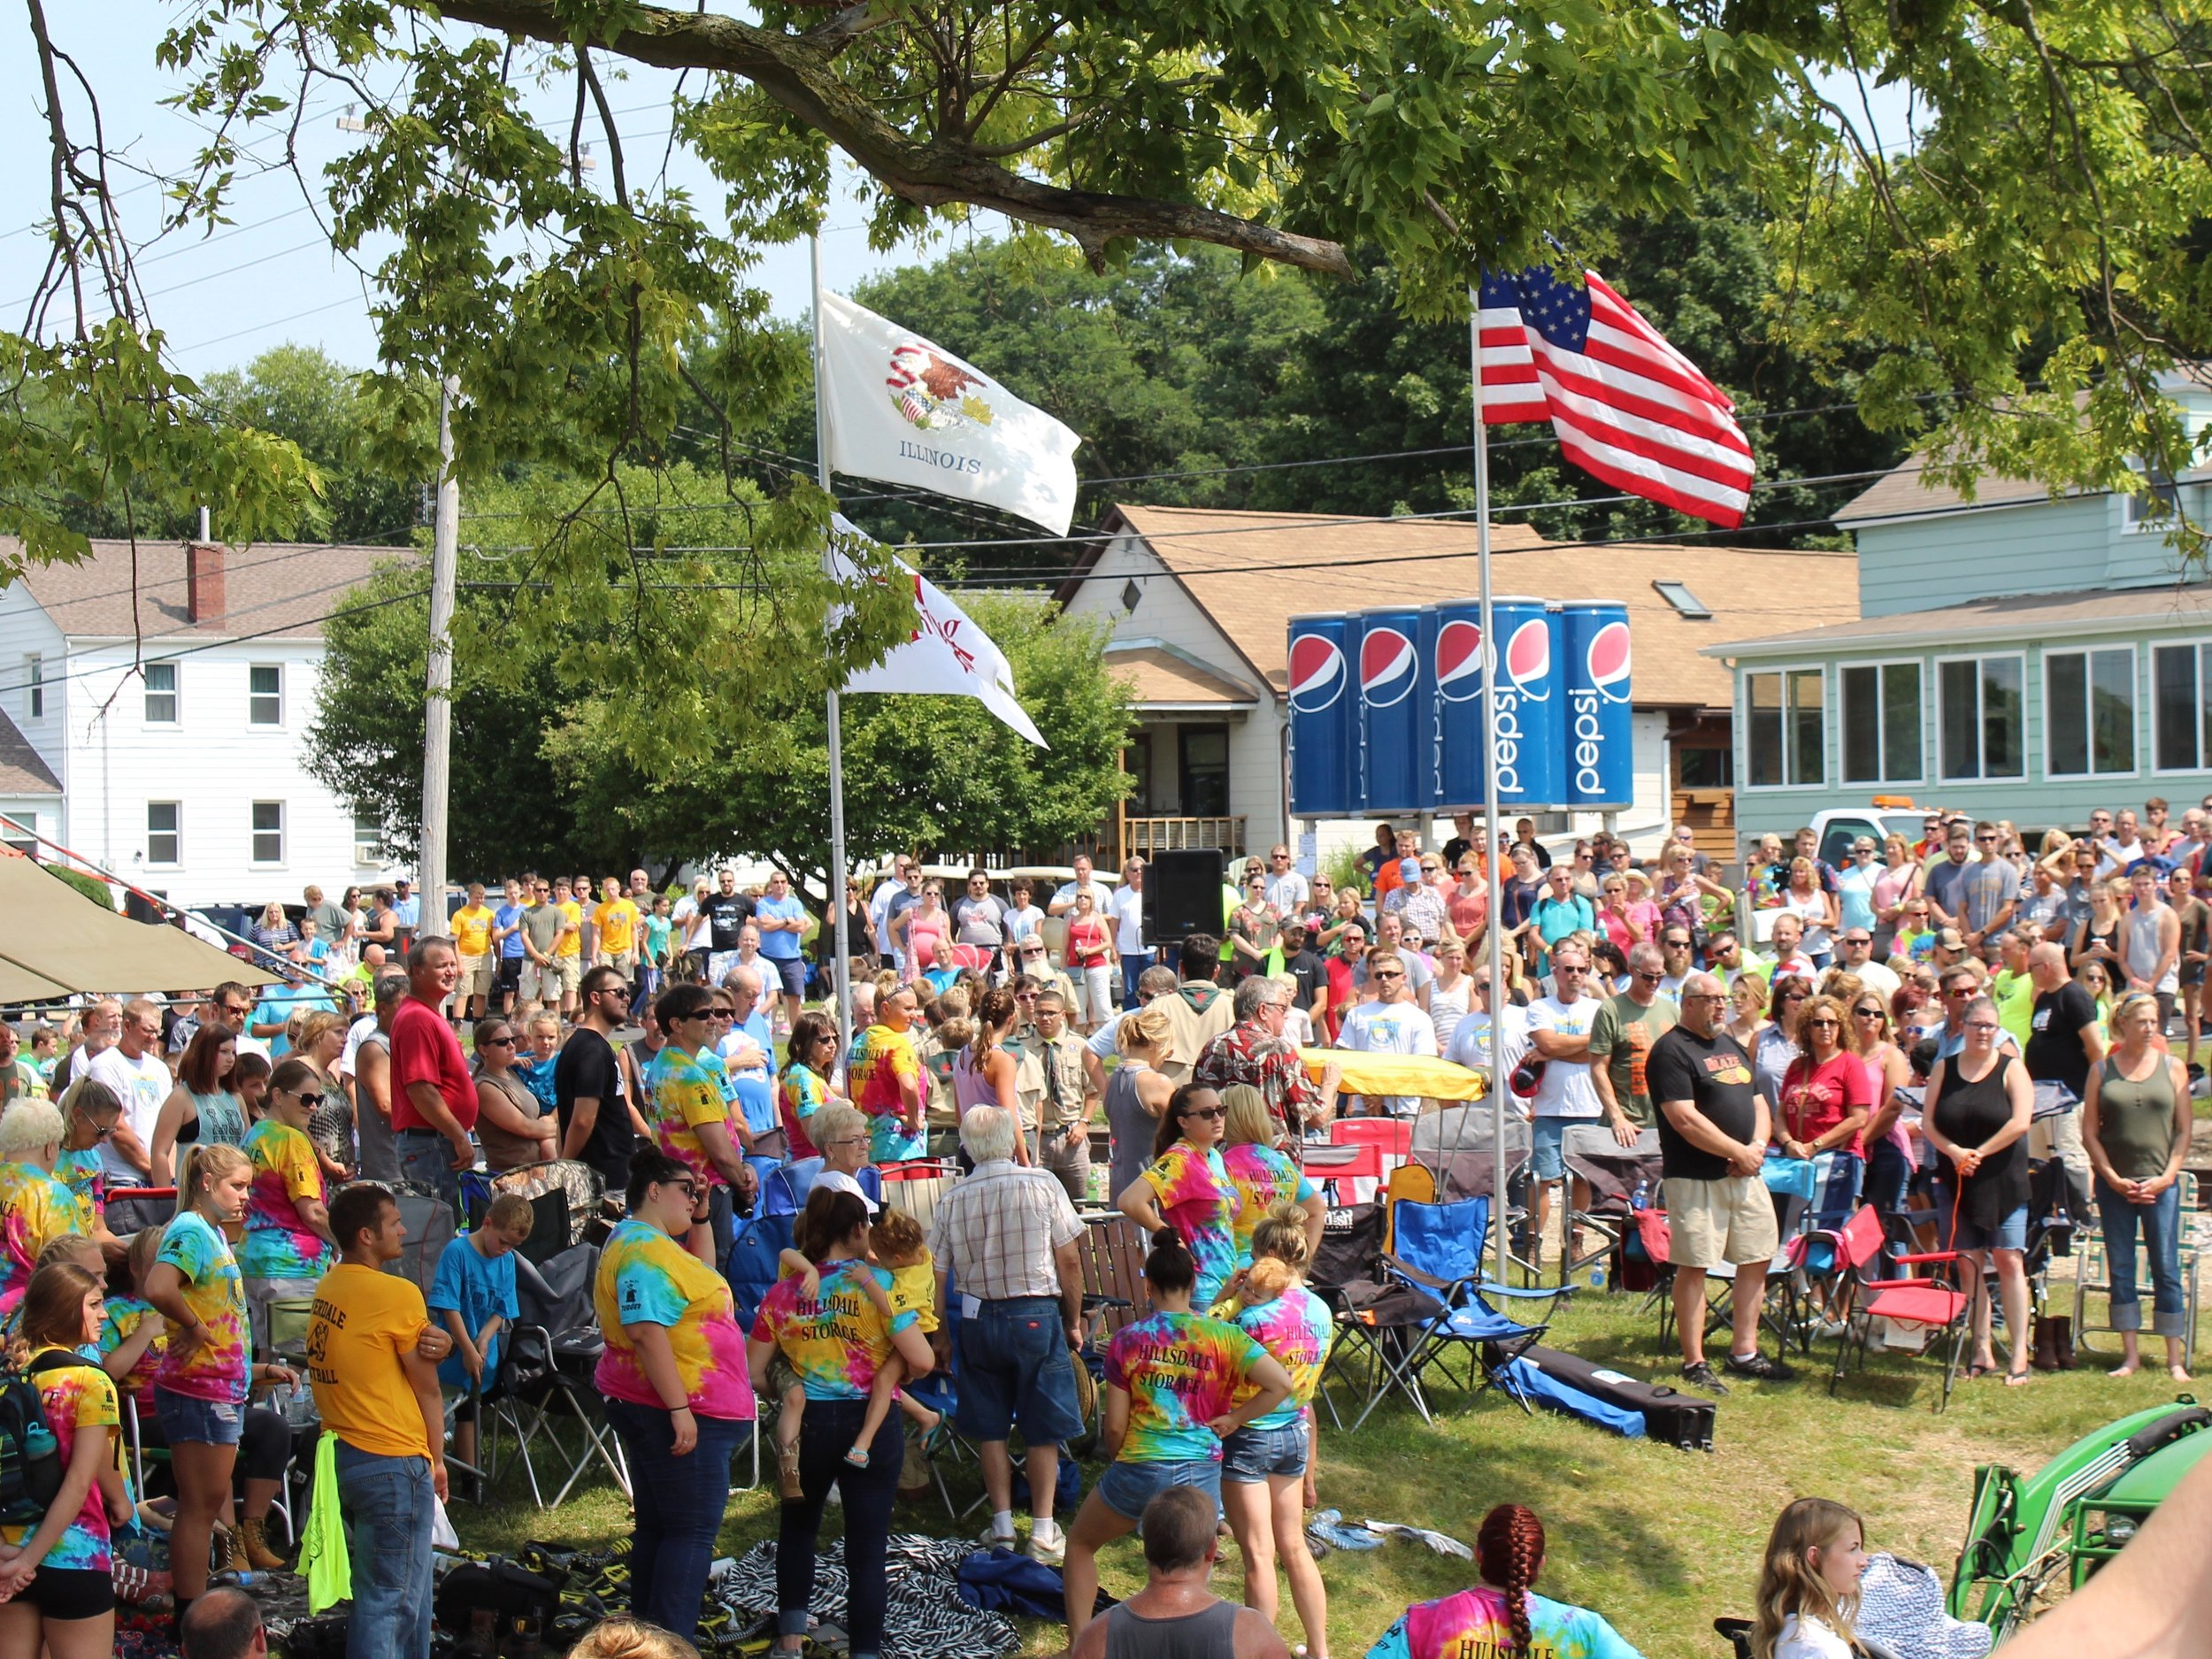 Illinoisans attend the Port Byron Tug Fest this summer. (One Illinois/Ted Cox)